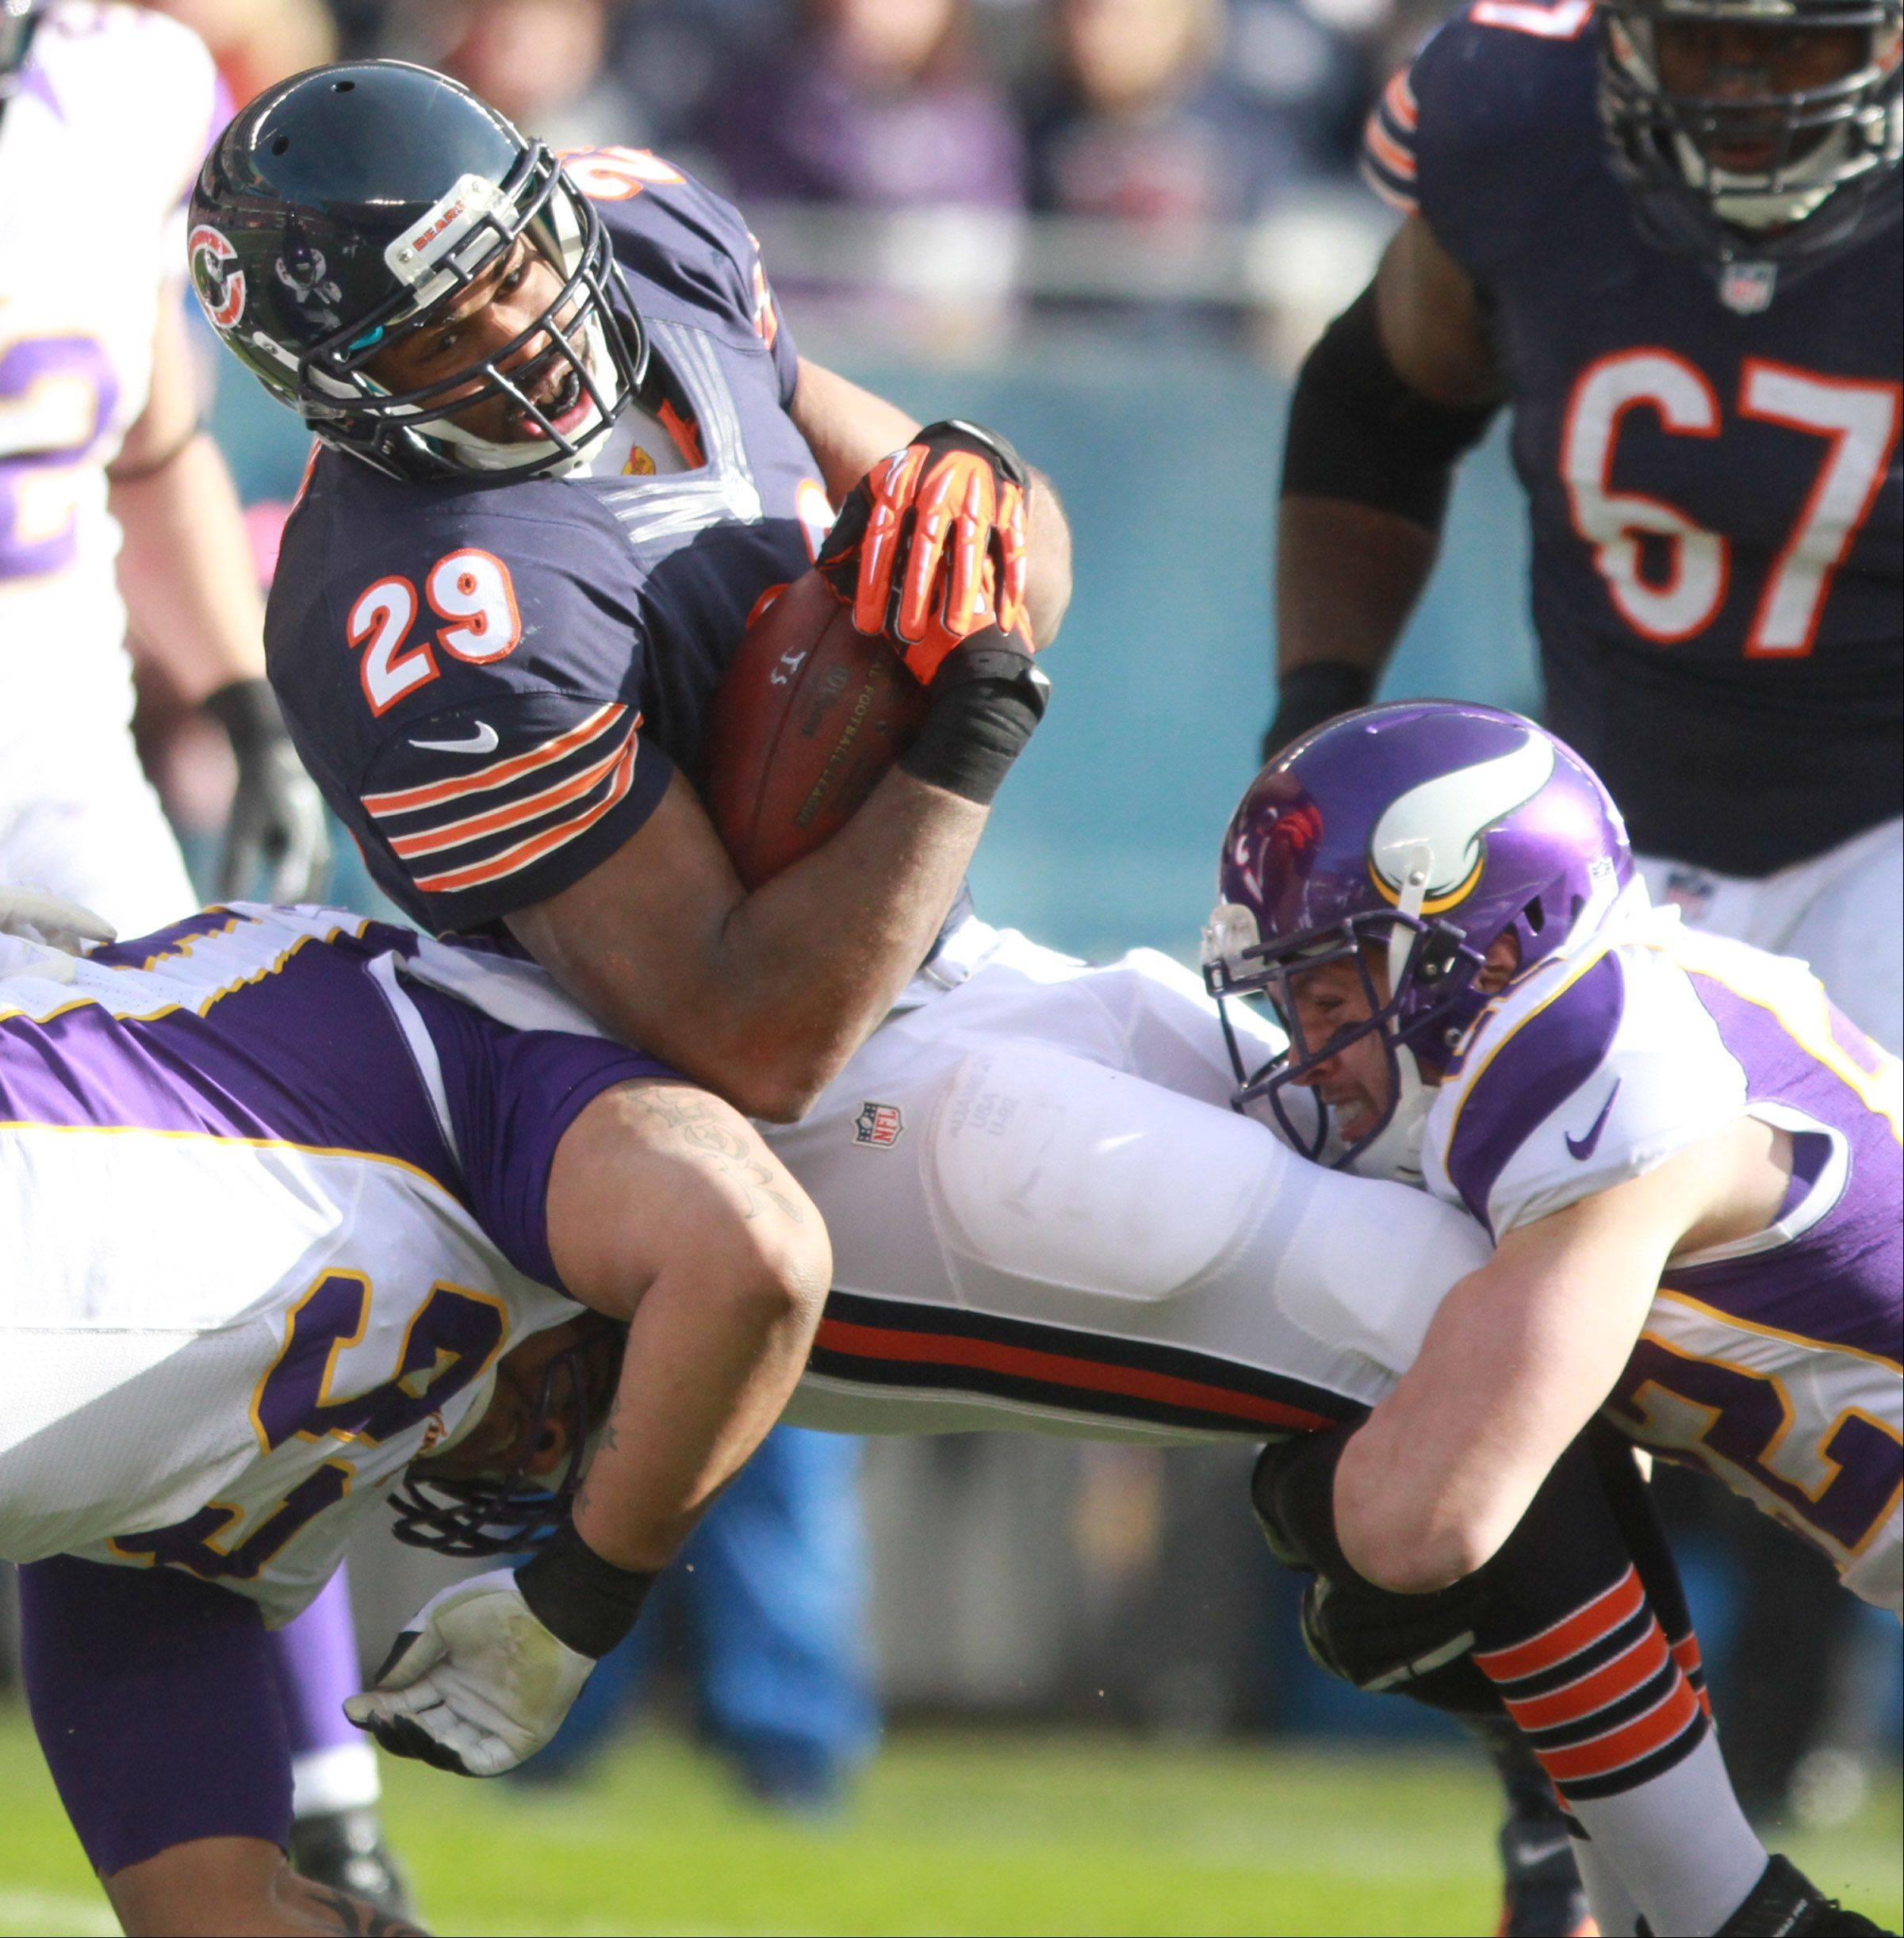 Chicago Bears running back Michael Bush is pulled down by Vikings free safety Harrison Smith and defensive tackle Kevin Williams at Soldier Field Sunday.